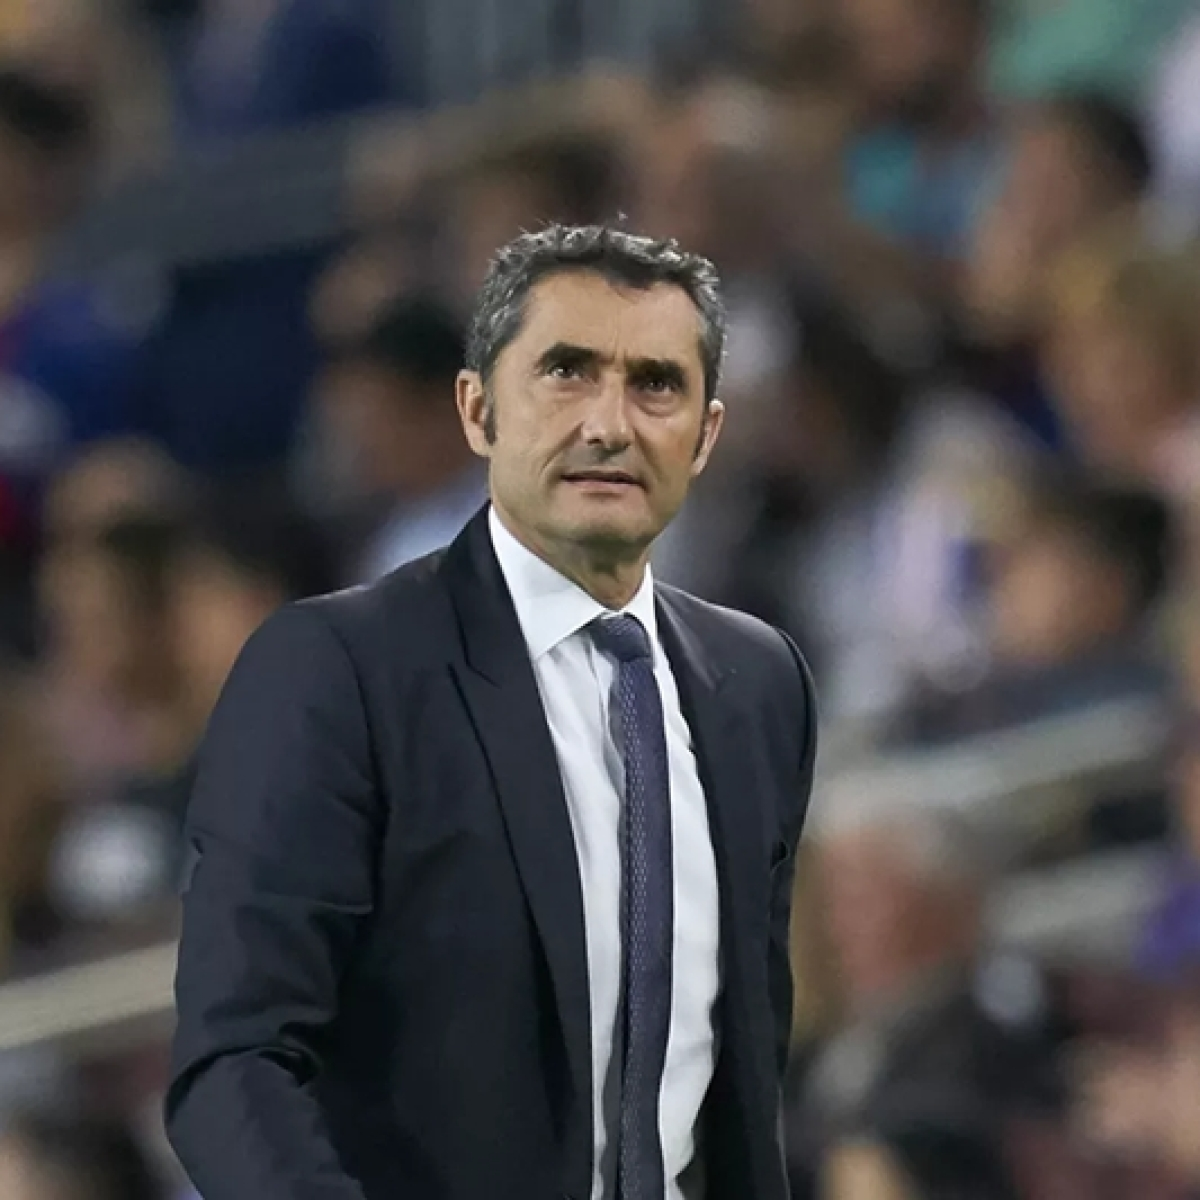 Barcelona sack Ernesto Valverde as head coach, appoint Quique Setien as replacement